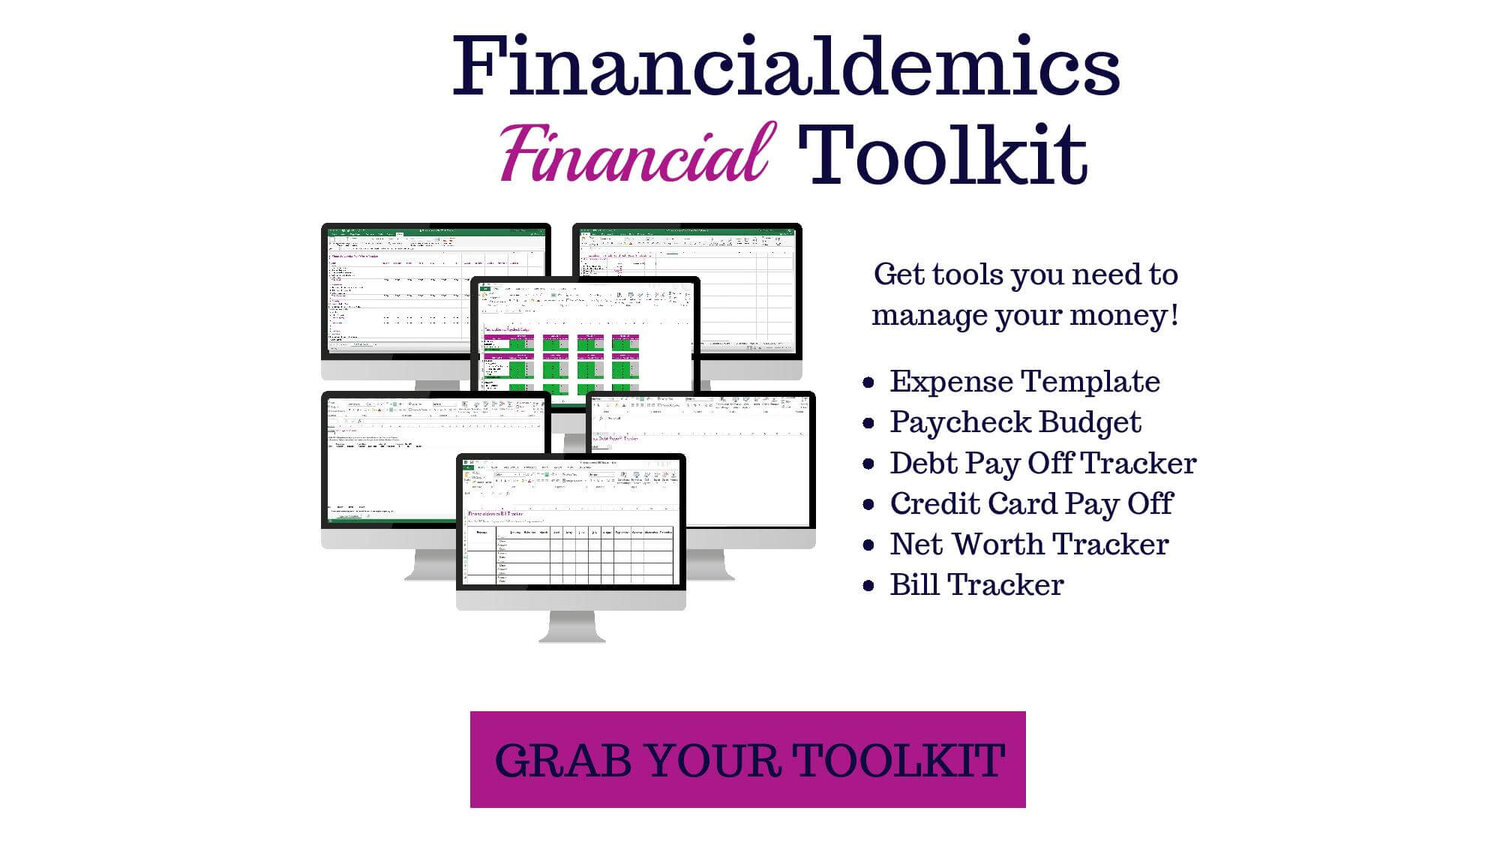 Copy of Get tools you need to manage your money!-page-001.jpg